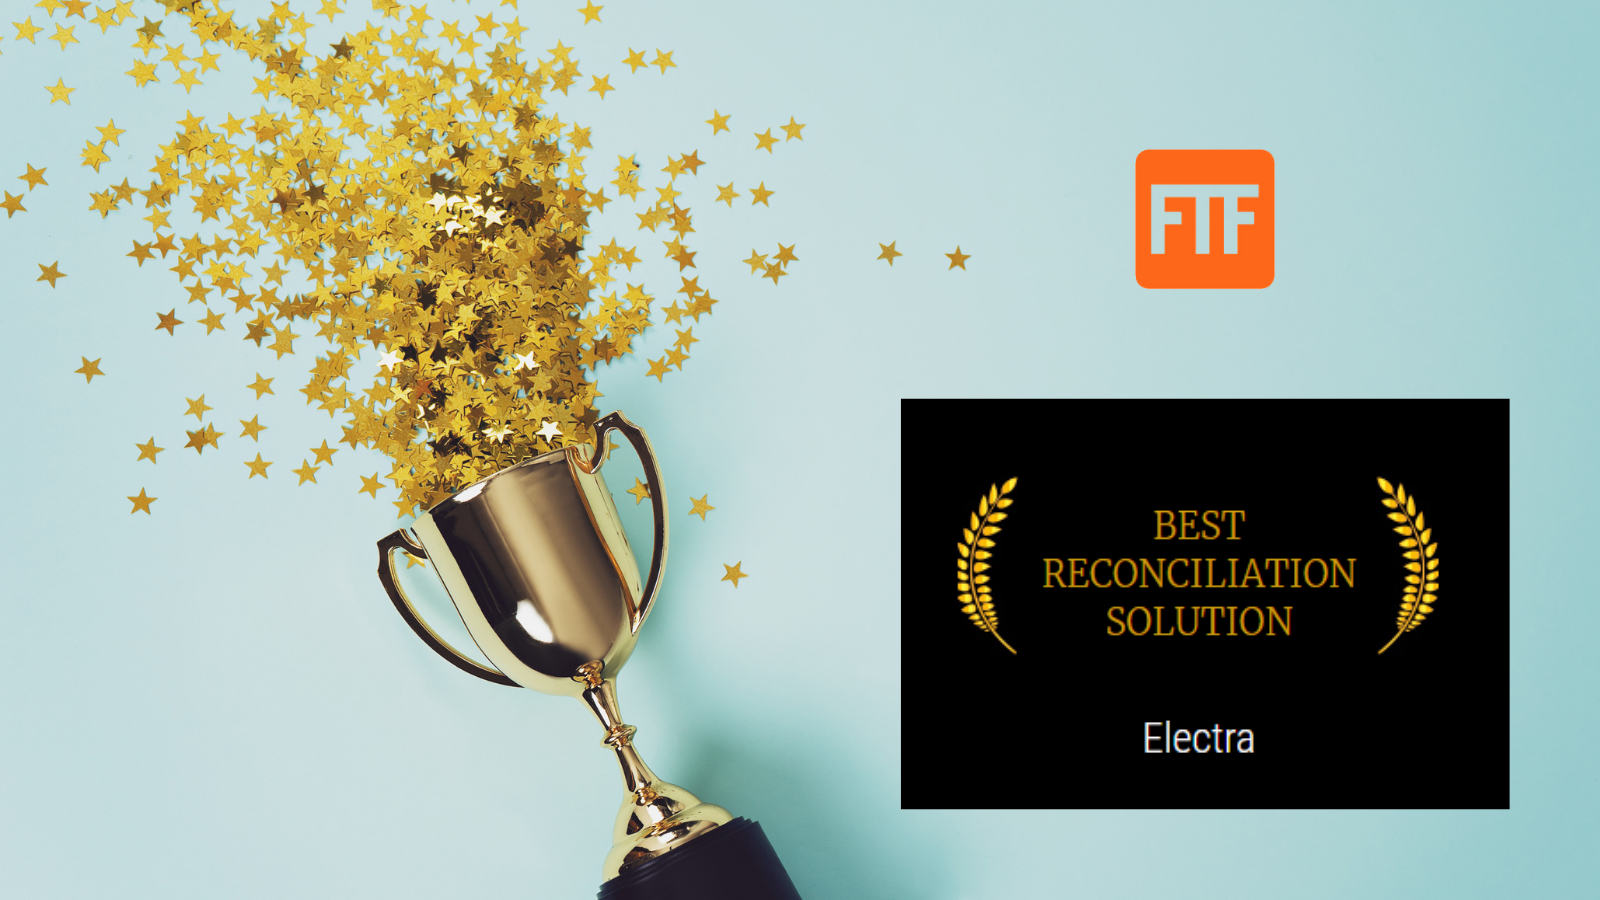 Electra Wins Sixth Consecutive FTF News Technology Innovation Award for Best Reconciliation Solution